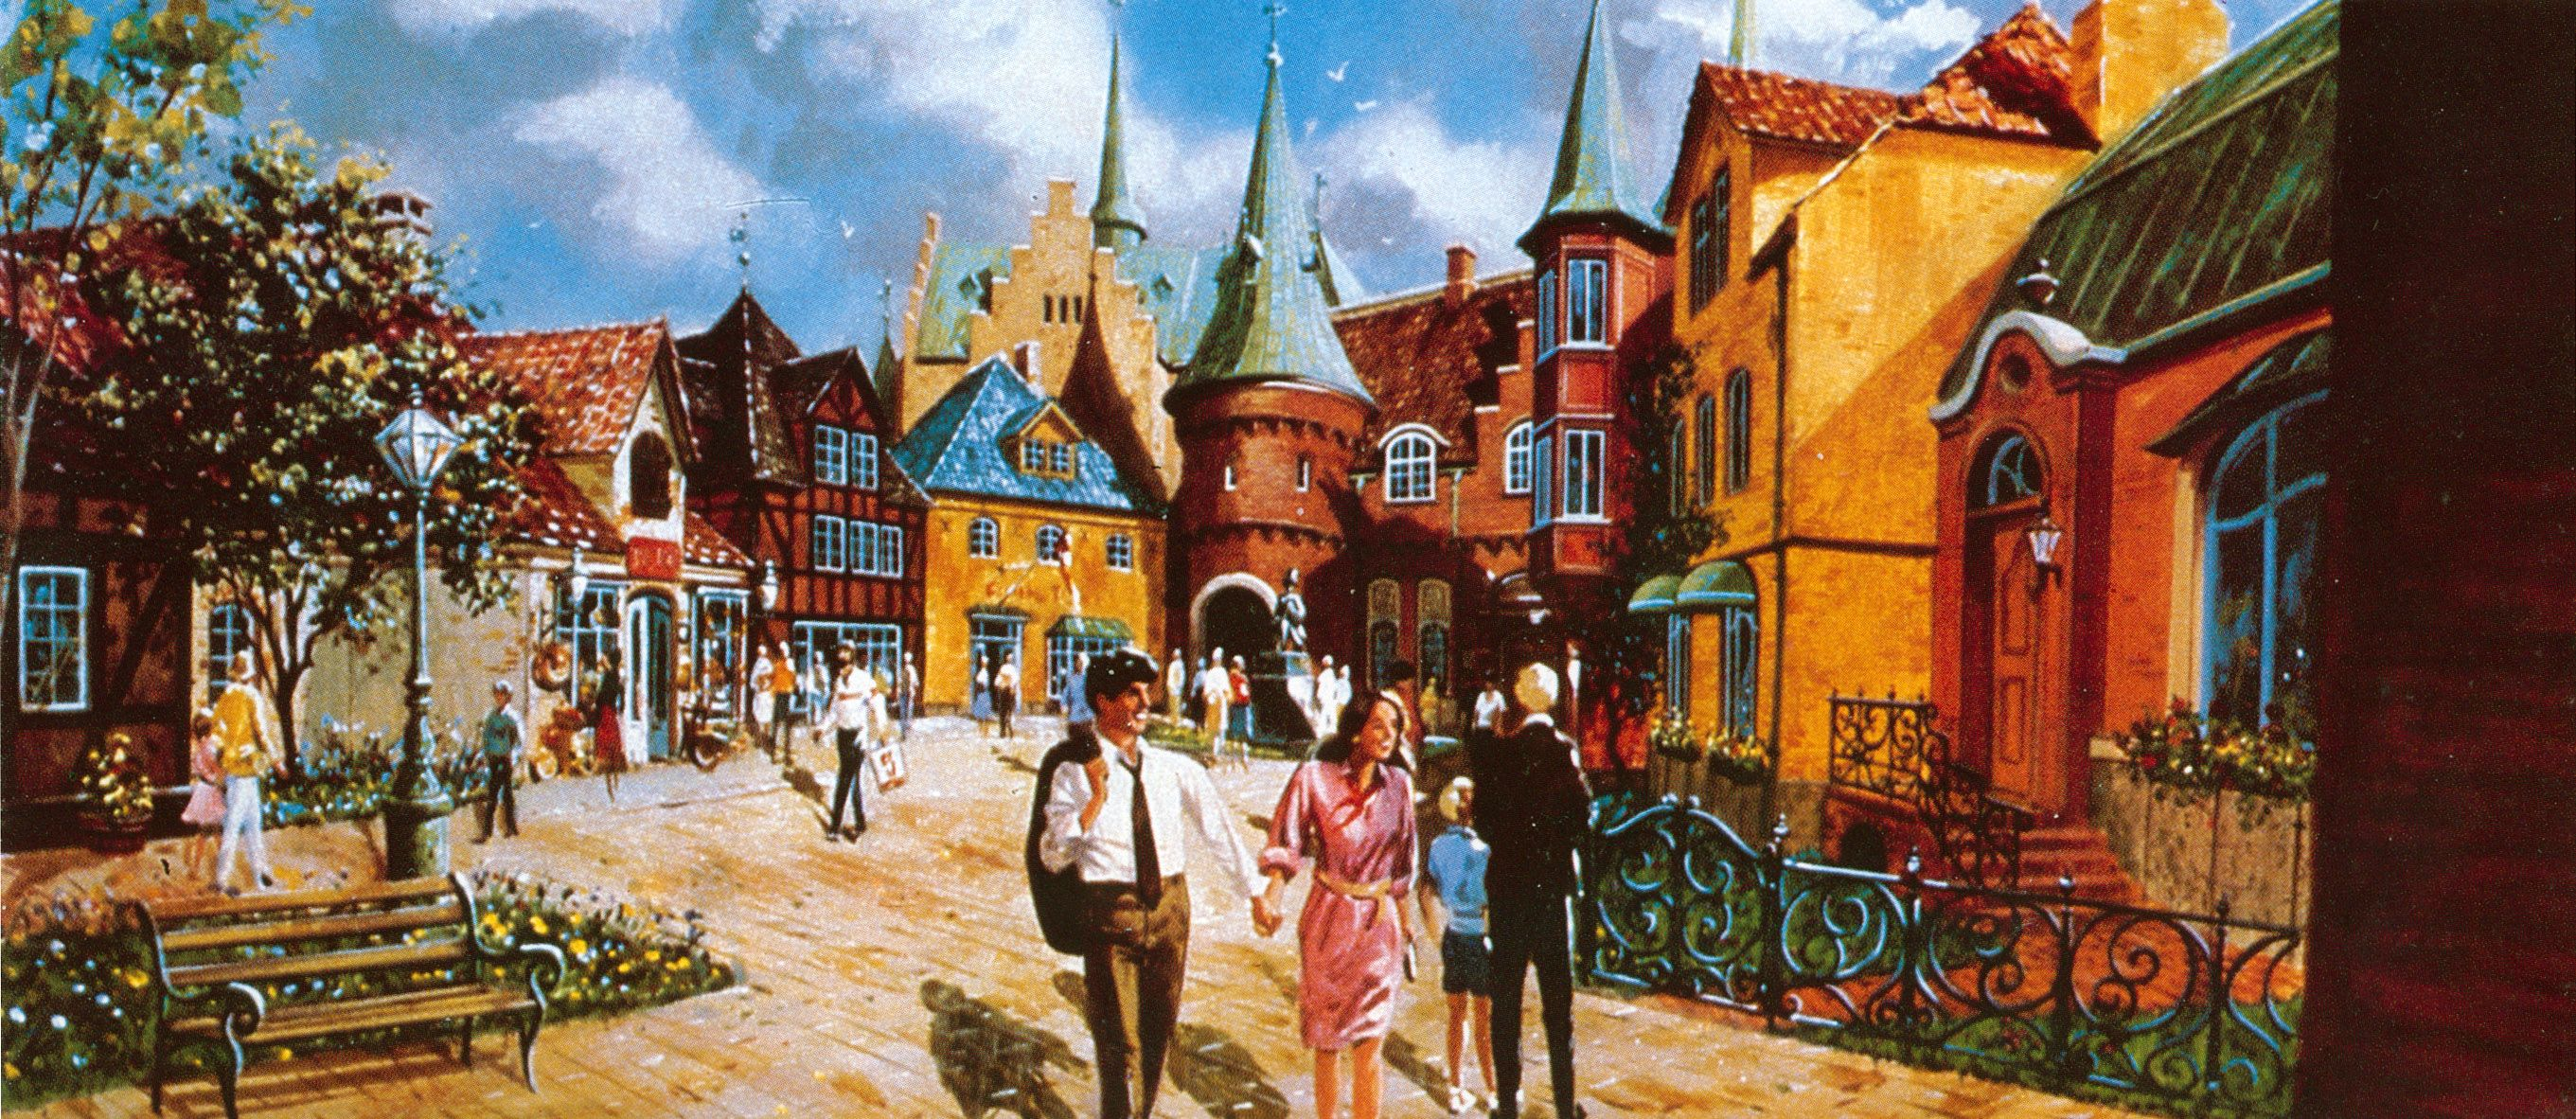 Disney Epcot Center Concept Art Pics